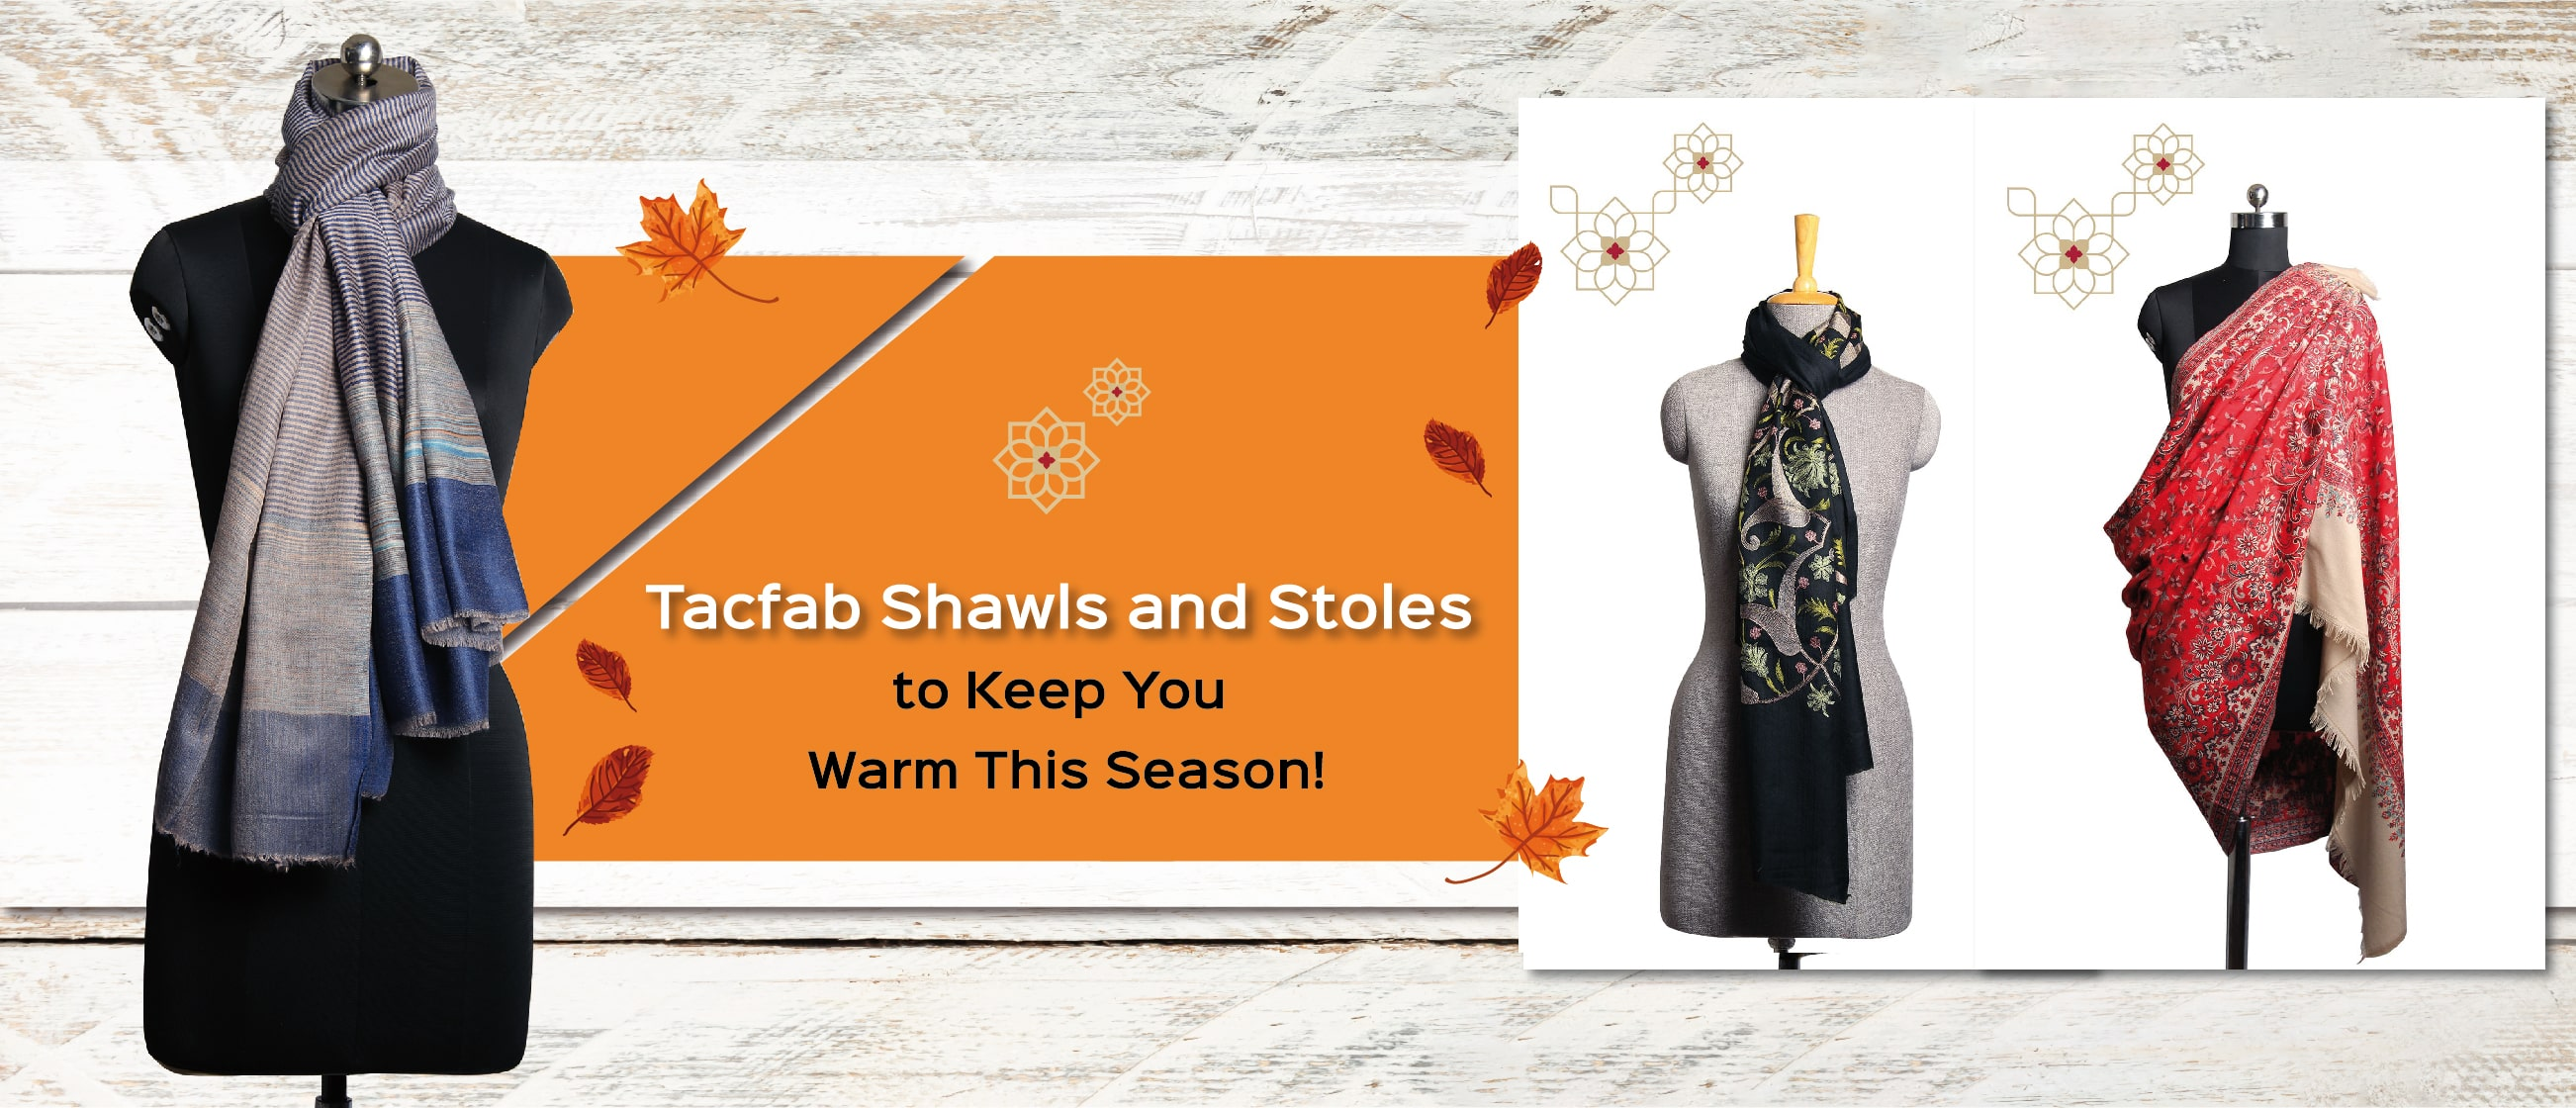 Tacfab Shawls and Stoles to Keep You Warm This Season